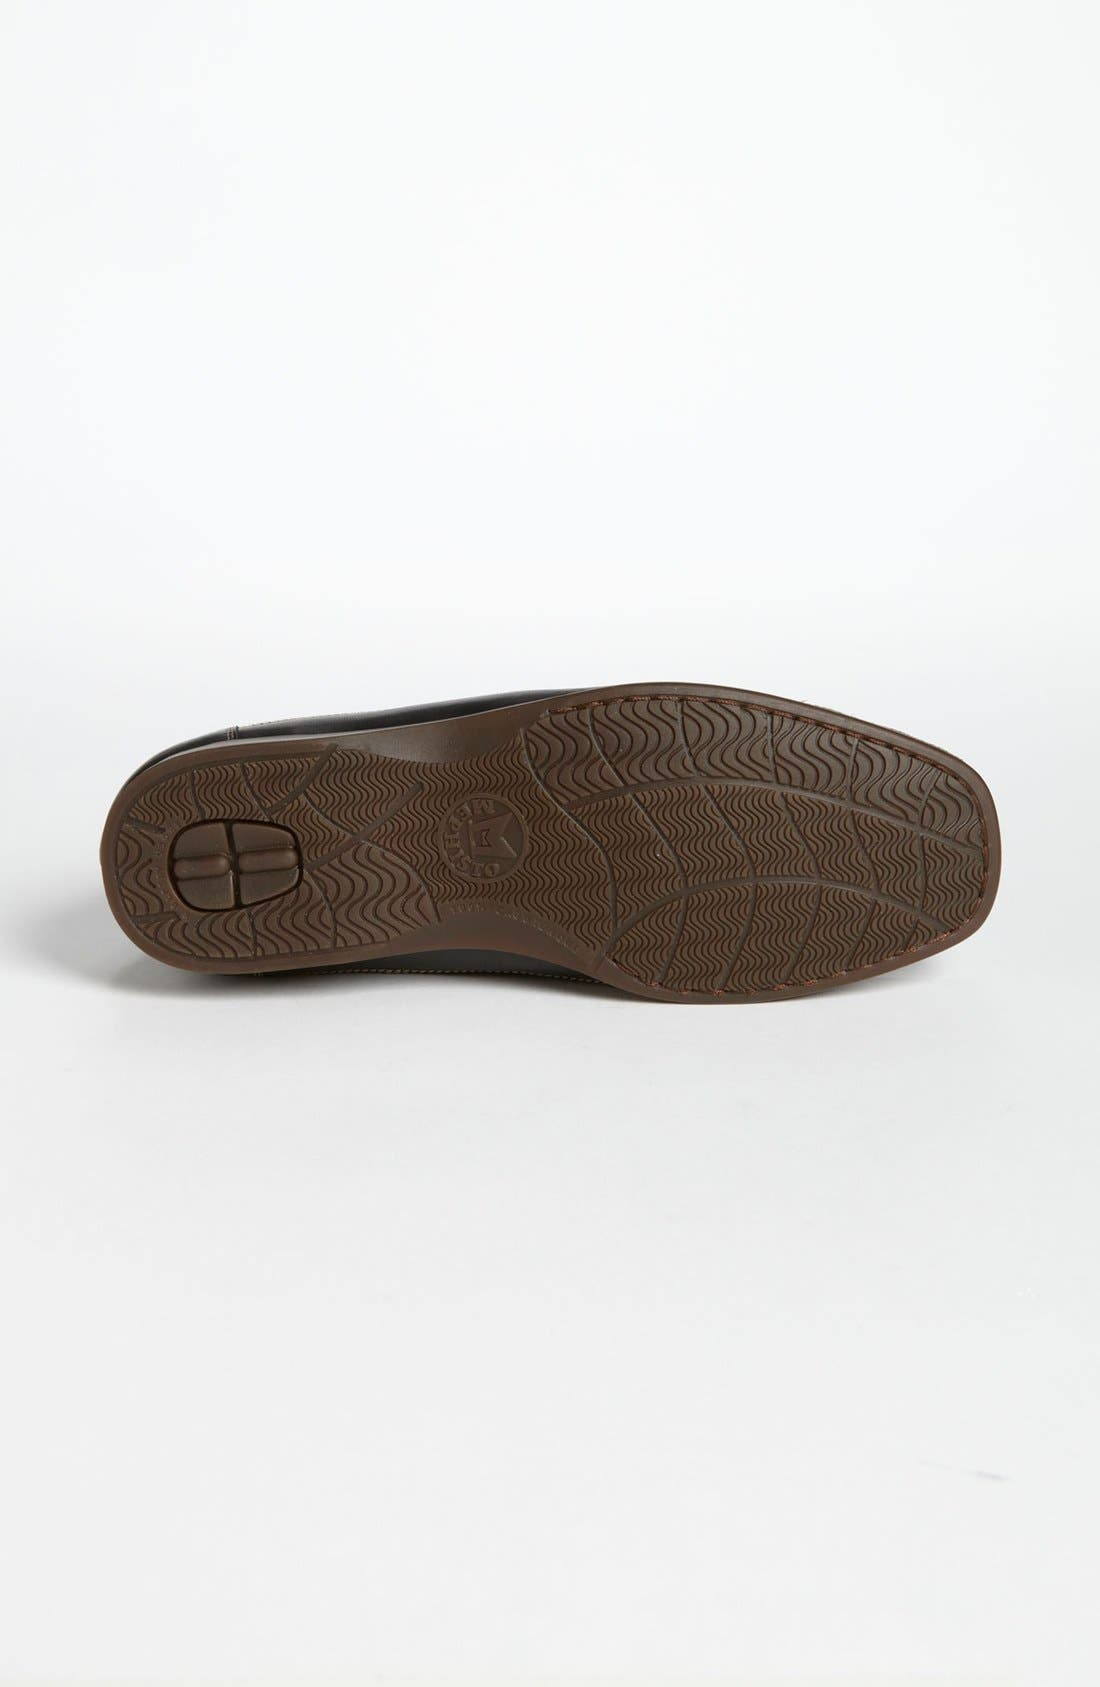 'Baduard' Loafer,                             Alternate thumbnail 4, color,                             Brown Nubuck/ Brown Suede